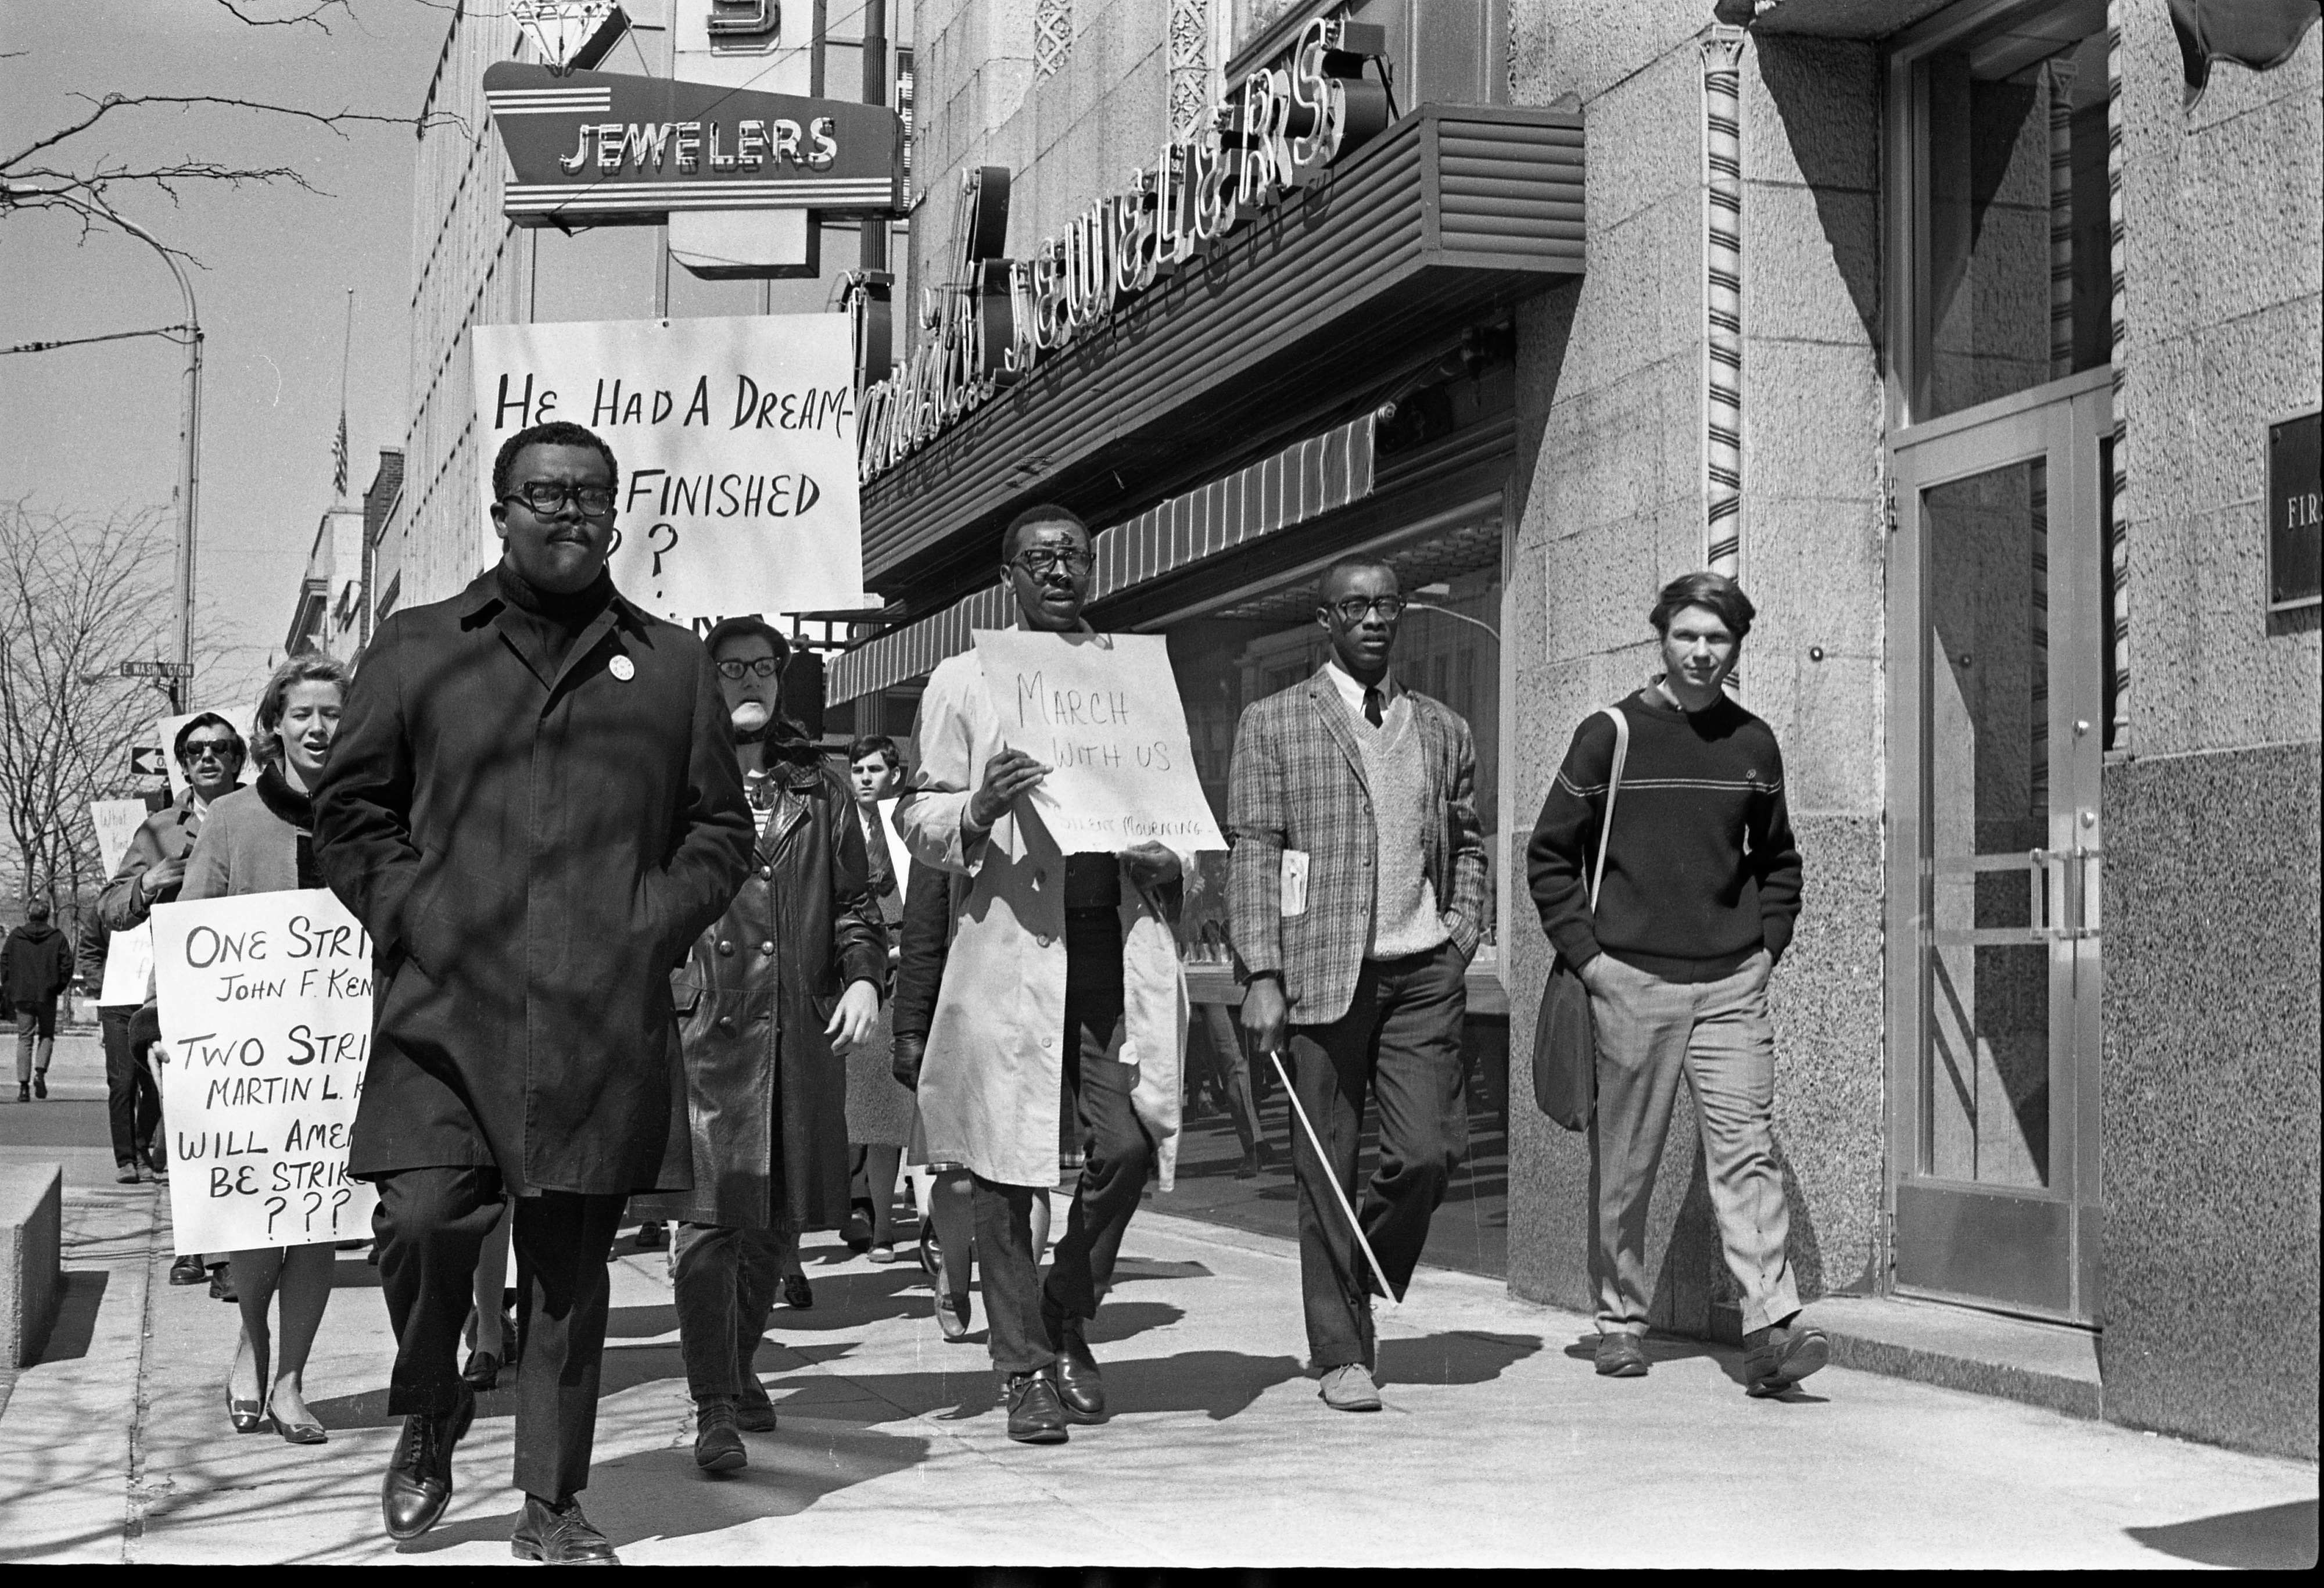 Marching On Main Street After Martin Luther King Jr Memorial Services, April 1968 image